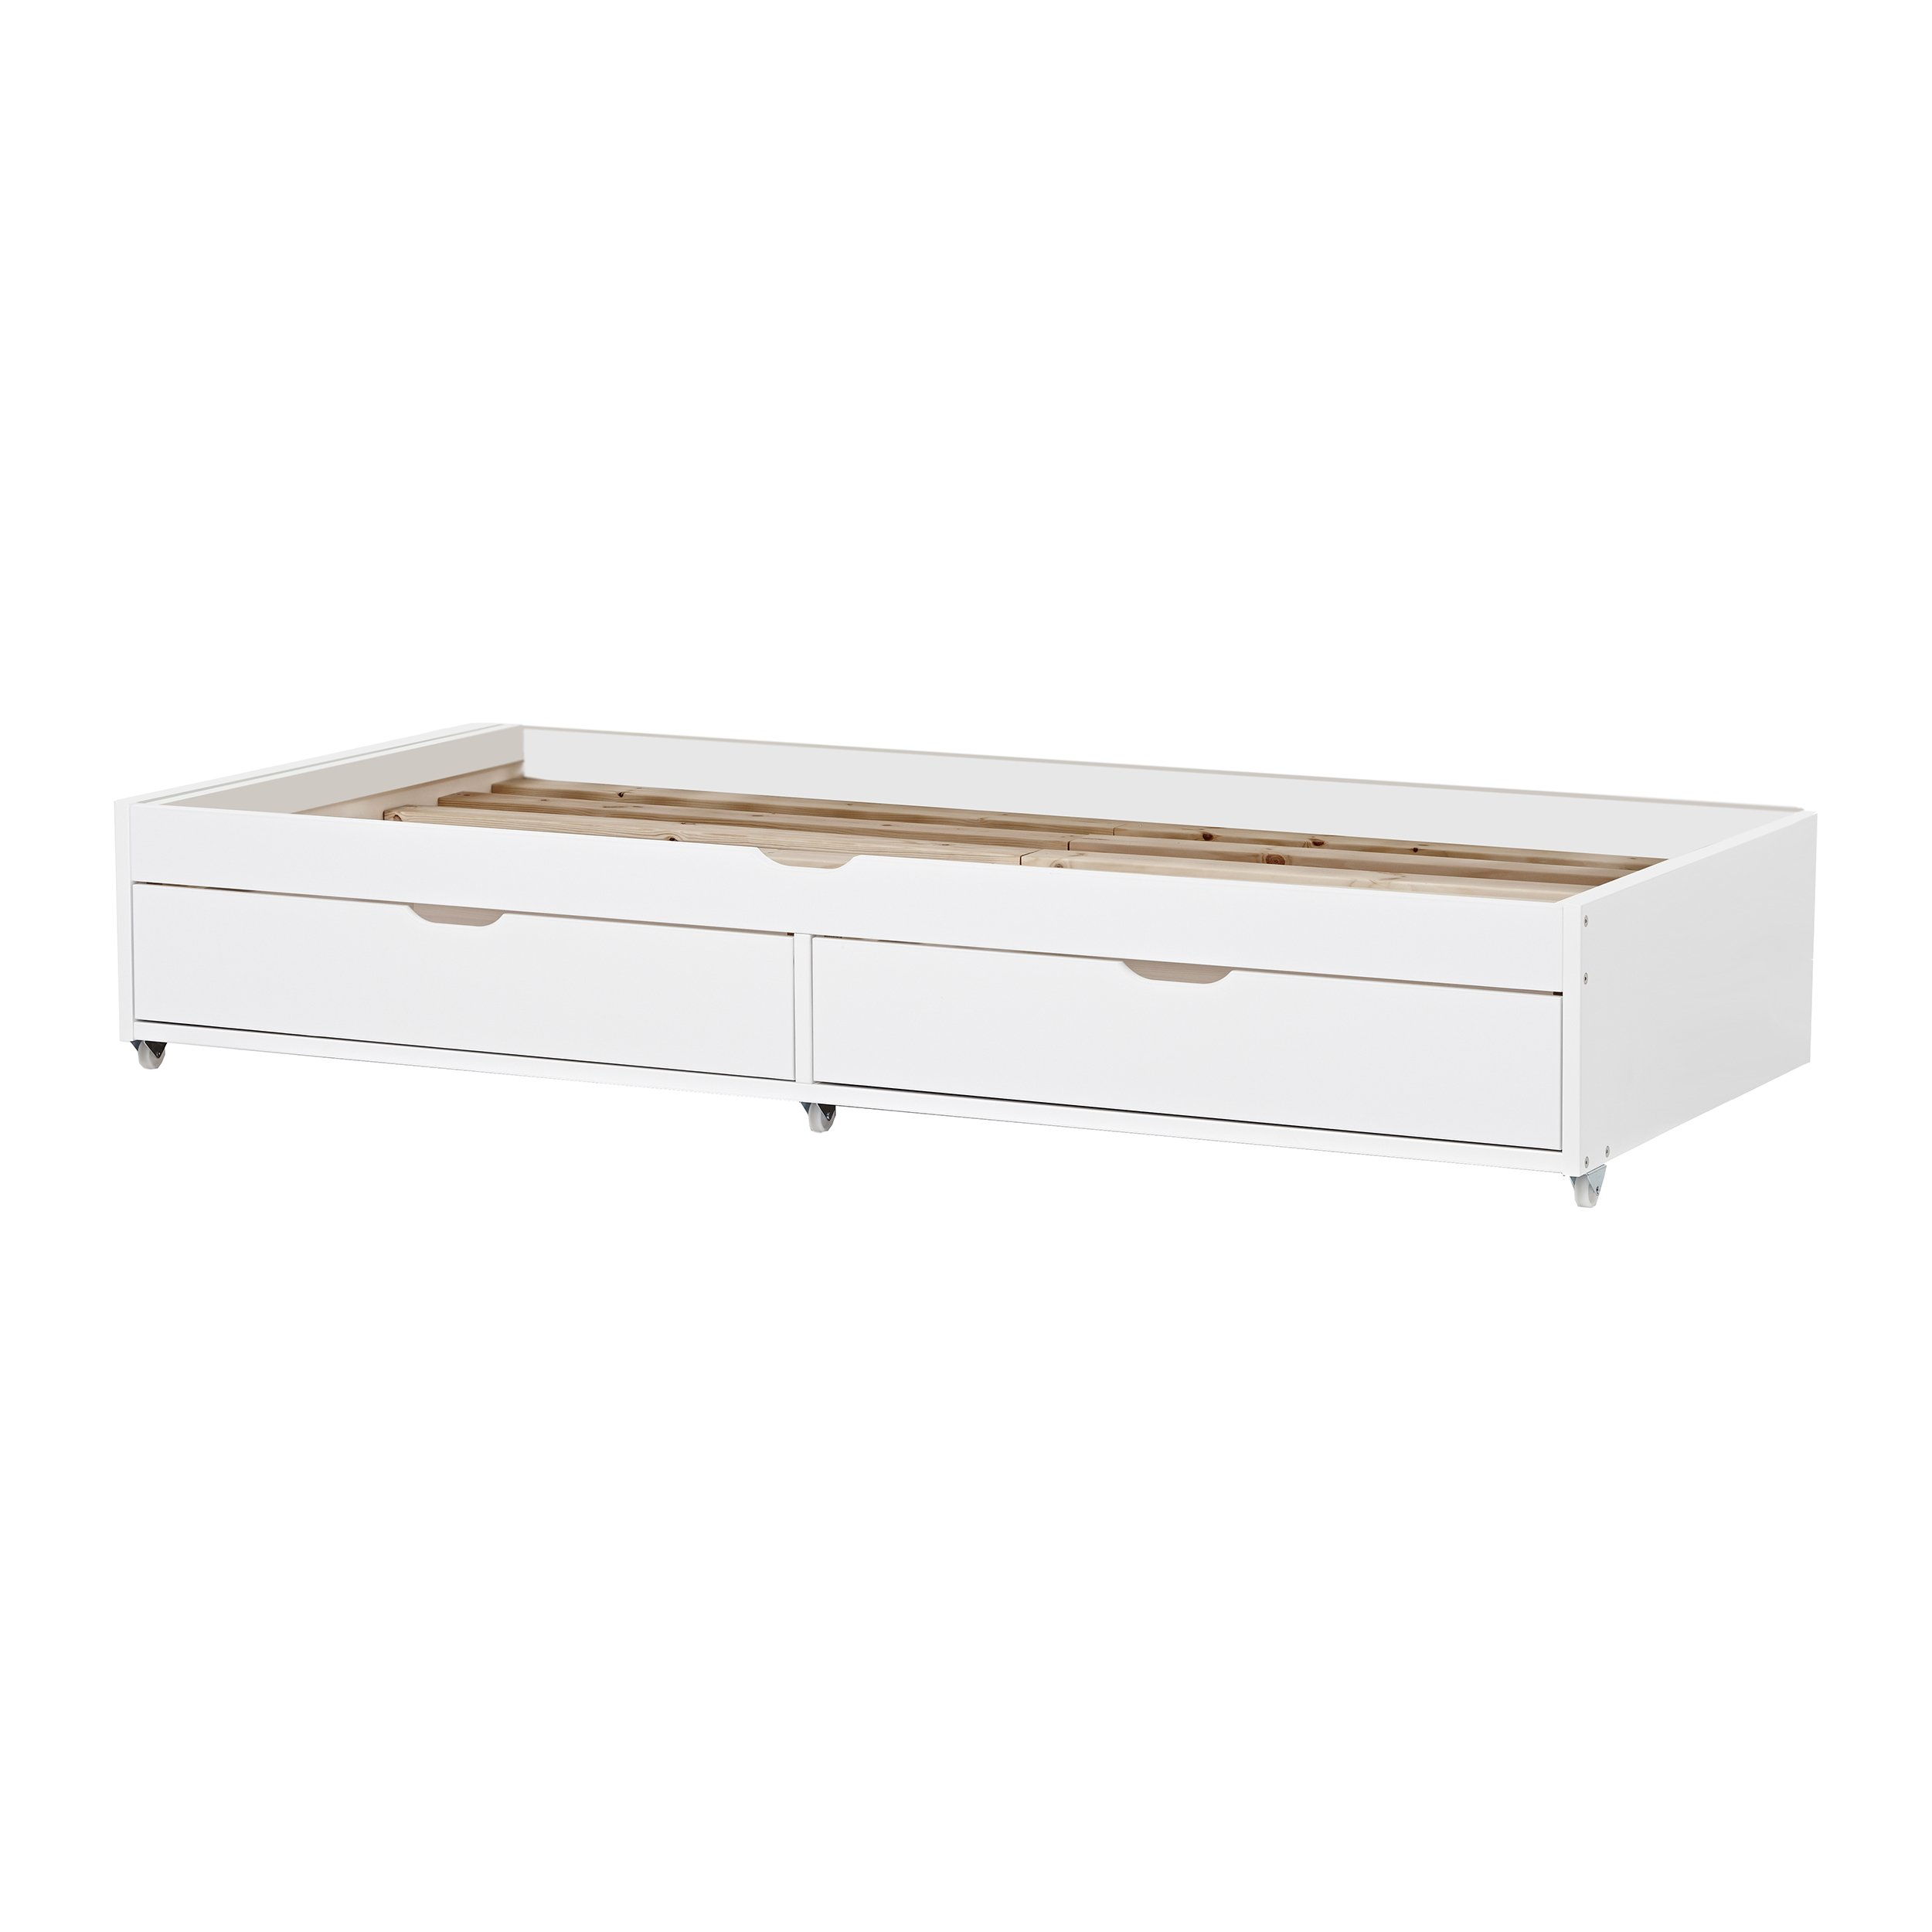 Hoppekids - Pull out Bed for DELUXE-Beds 90x190 cm